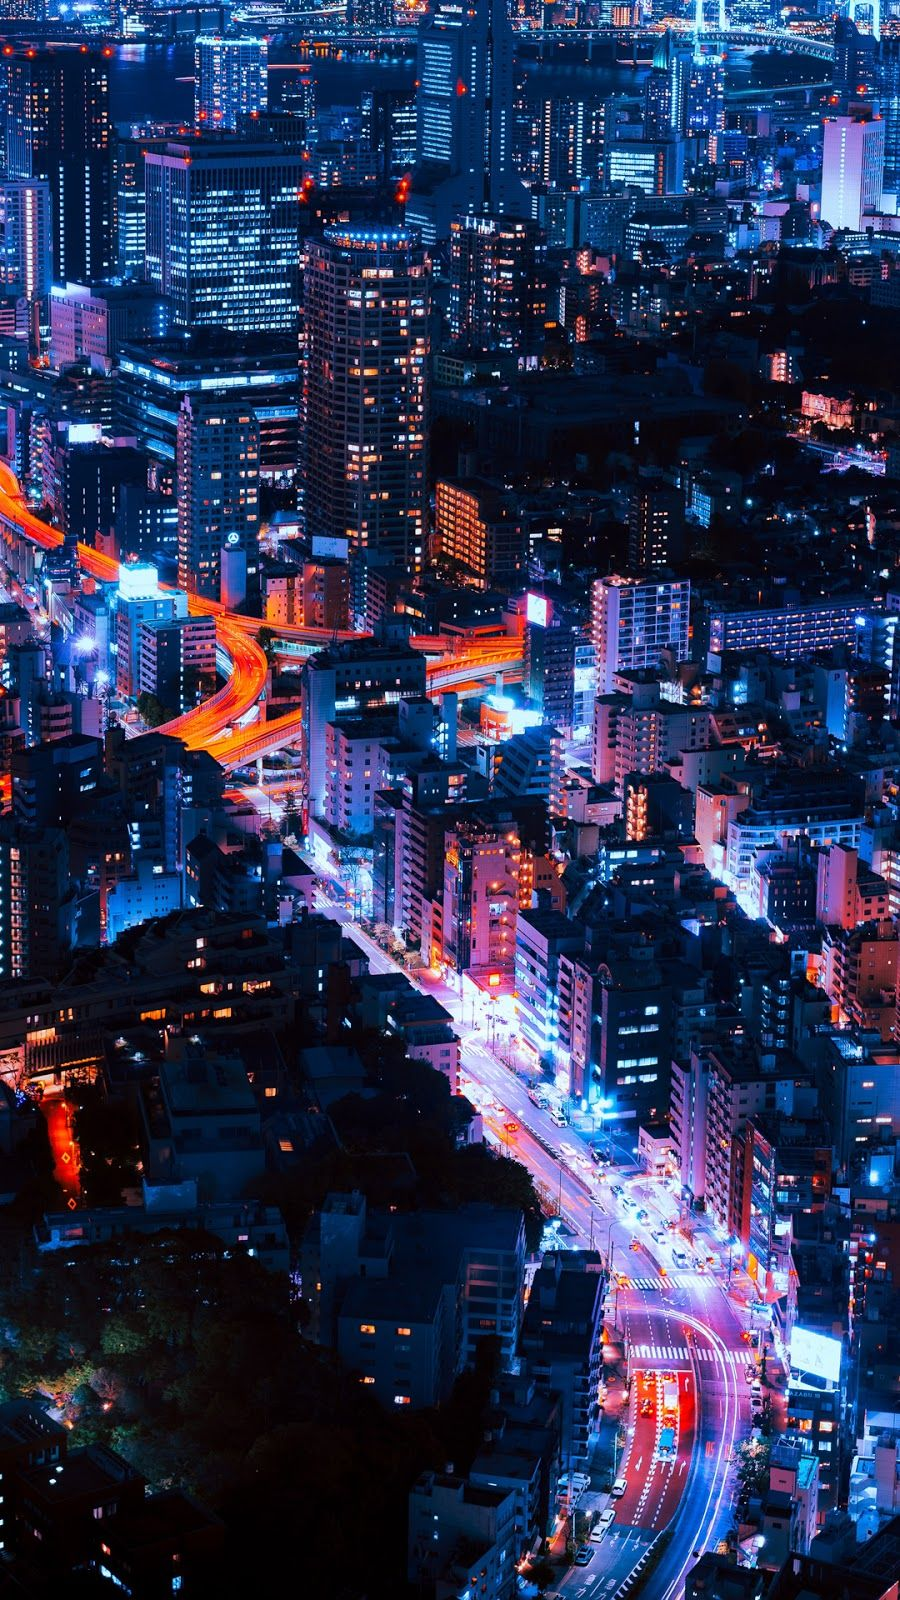 Tokyo Night City Iphone Wallpaper City Wallpaper Stunning Wallpapers